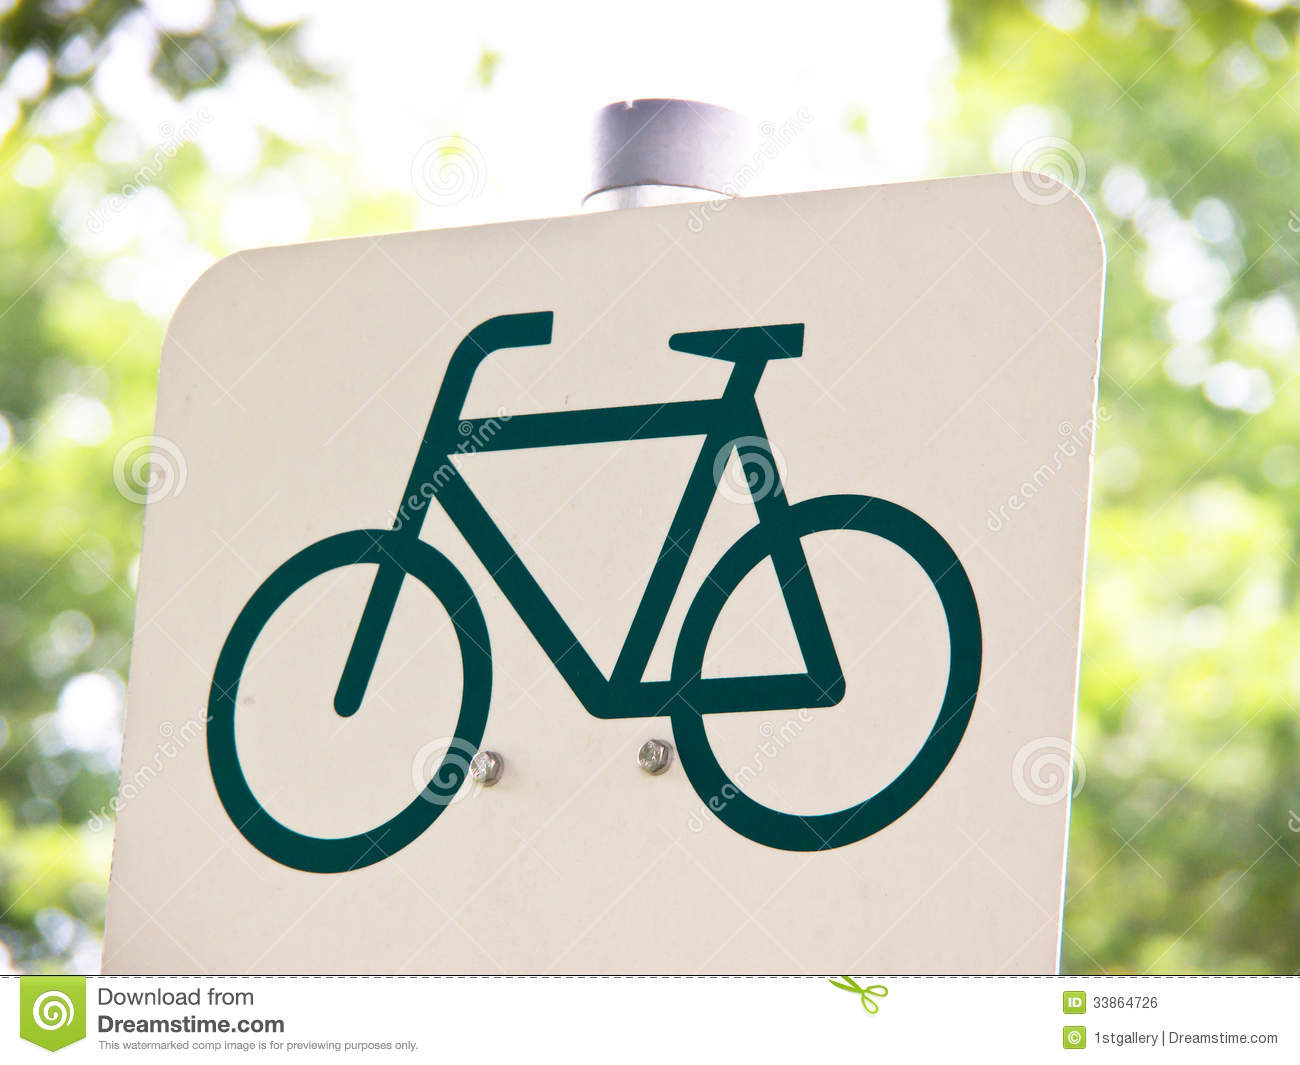 Cycle route sign (1)